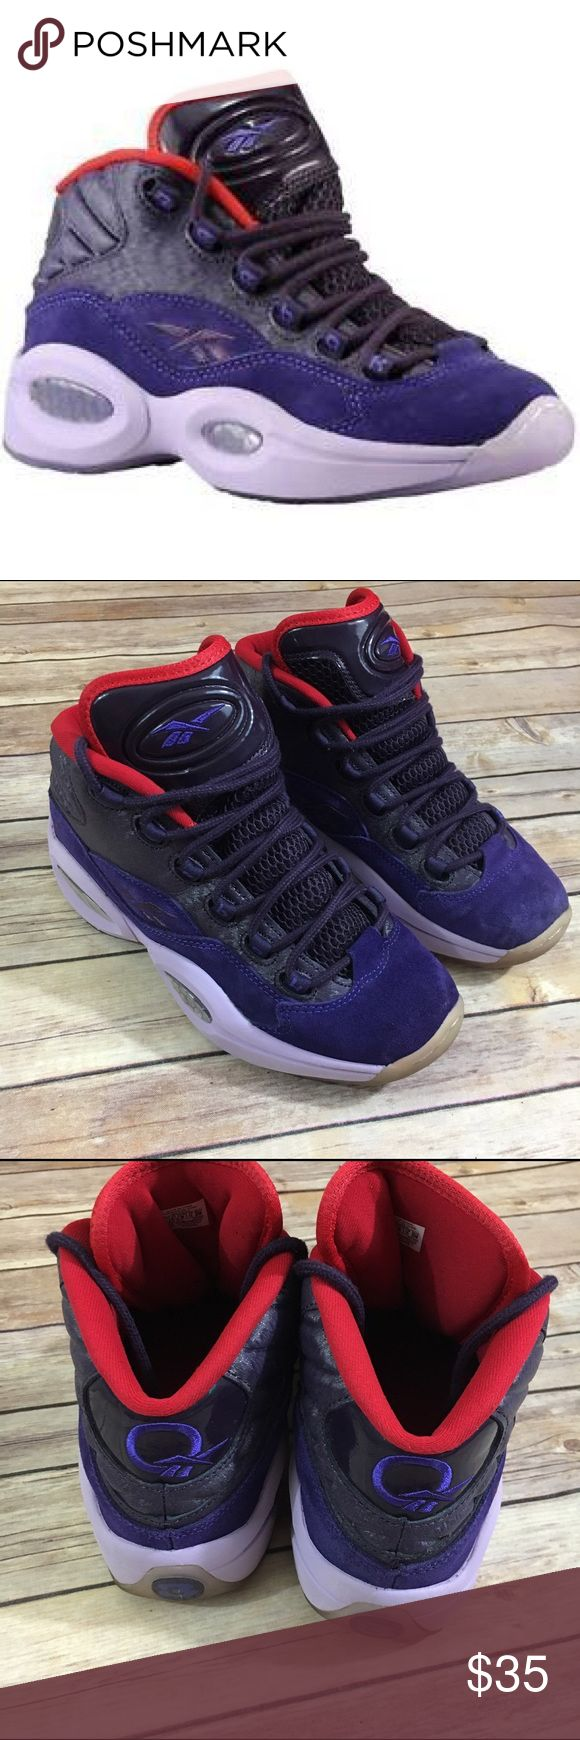 Reebok Question Mid Iverson Ghosts of Christmas 7 Reebok Question Mid Iverson Ghosts of Christmas Future 7  Mid top sneaker Lace up closure  Honeycomb air bubble sole for comfort  Great condition.  Very little wear.  A little staining on toes.  Very nice shoe.  #purple #red #kicks #coolkicks #alleniverson #ghostsofchristmasfuture #midtop #sneakers #summerkicks #suede #basketball #athleisure Reebok Shoes Sneakers